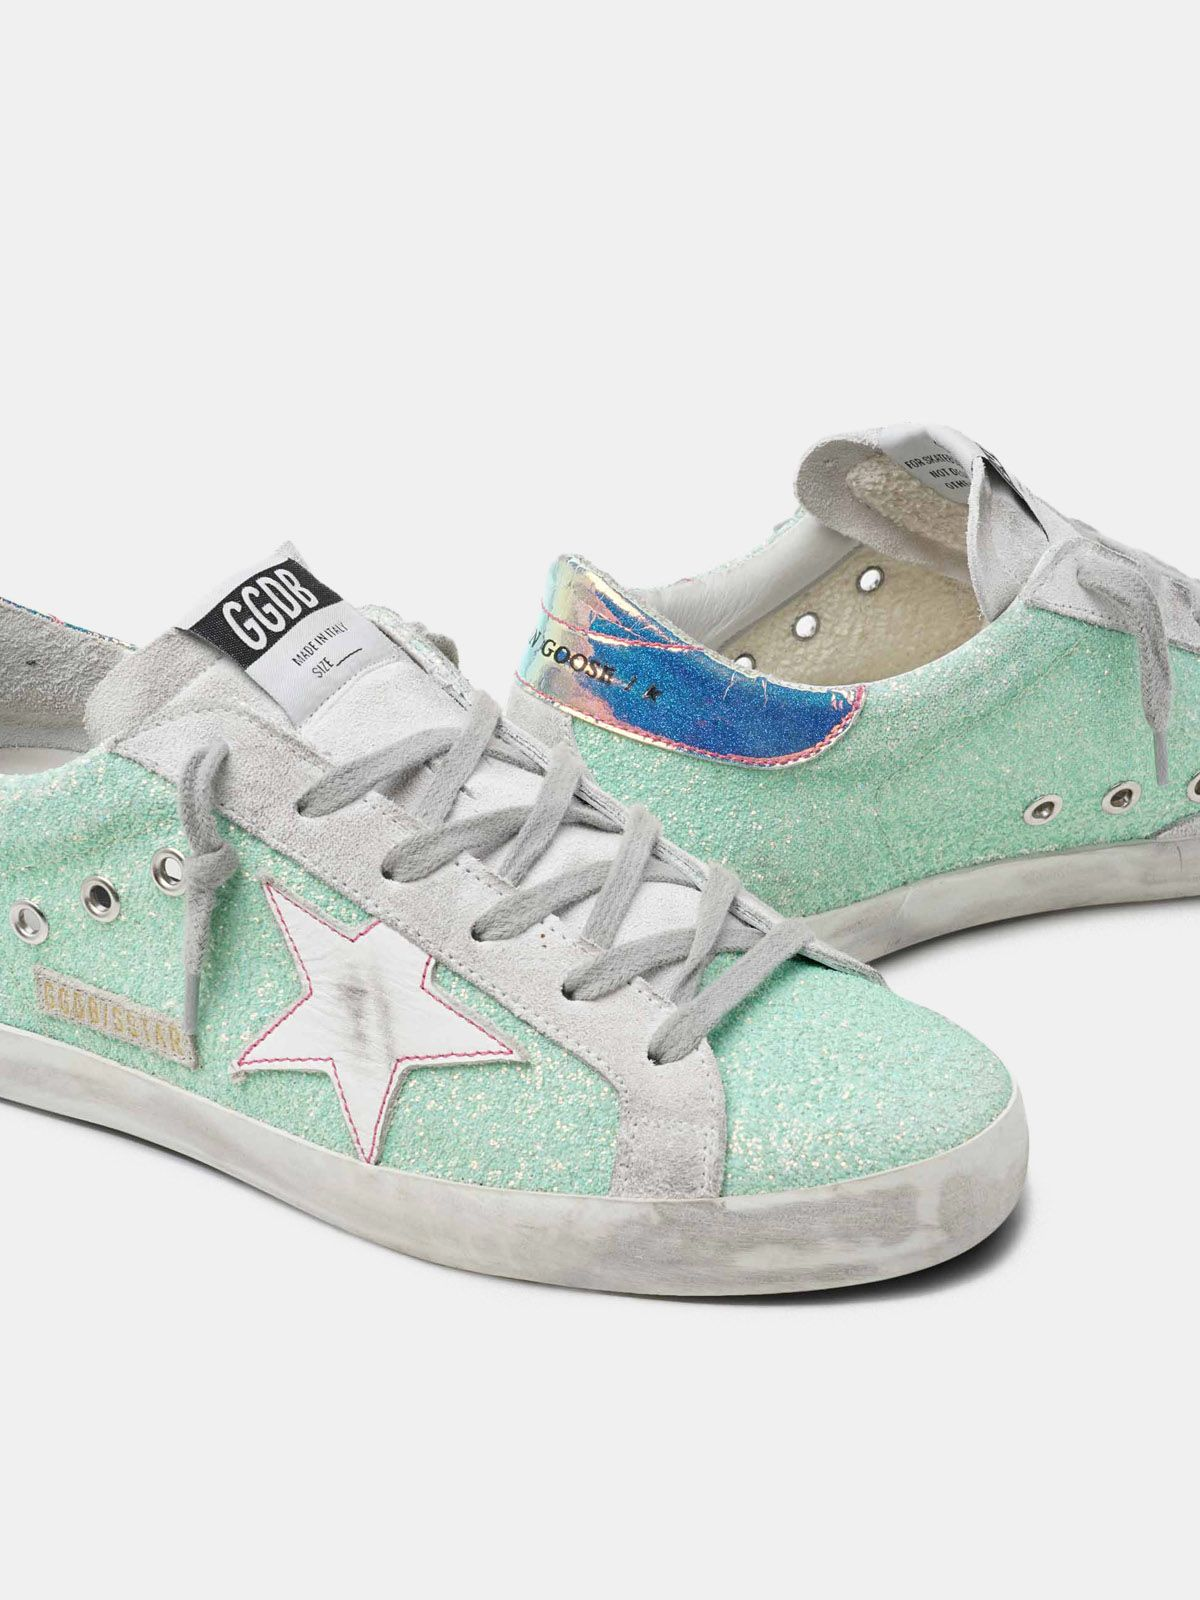 Golden Goose - Super-Star sneakers with green glitter and chrome heel tab in